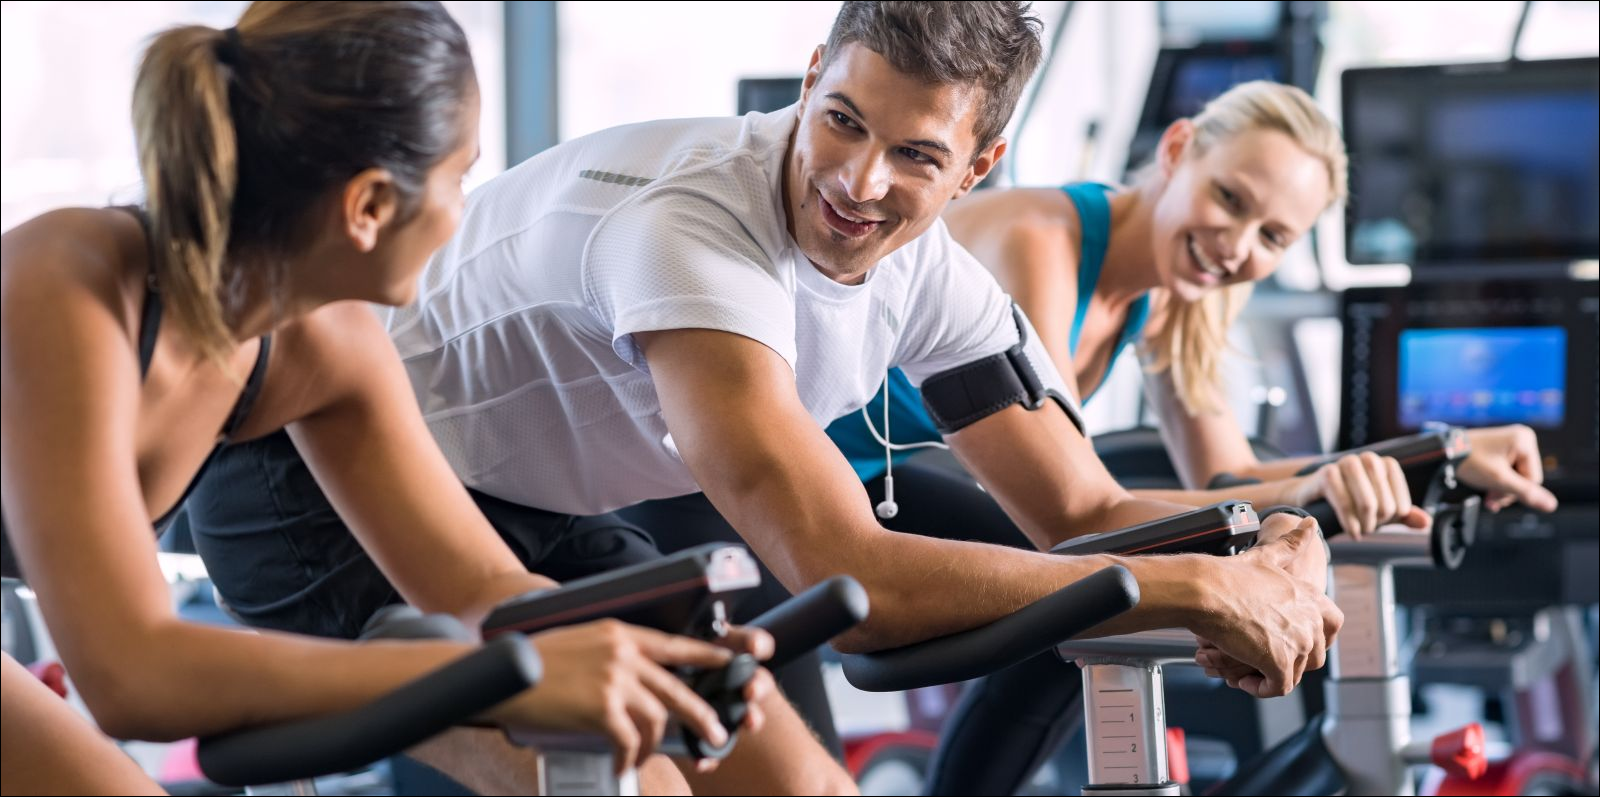 Young people talking and smiling while working out on bike at gym